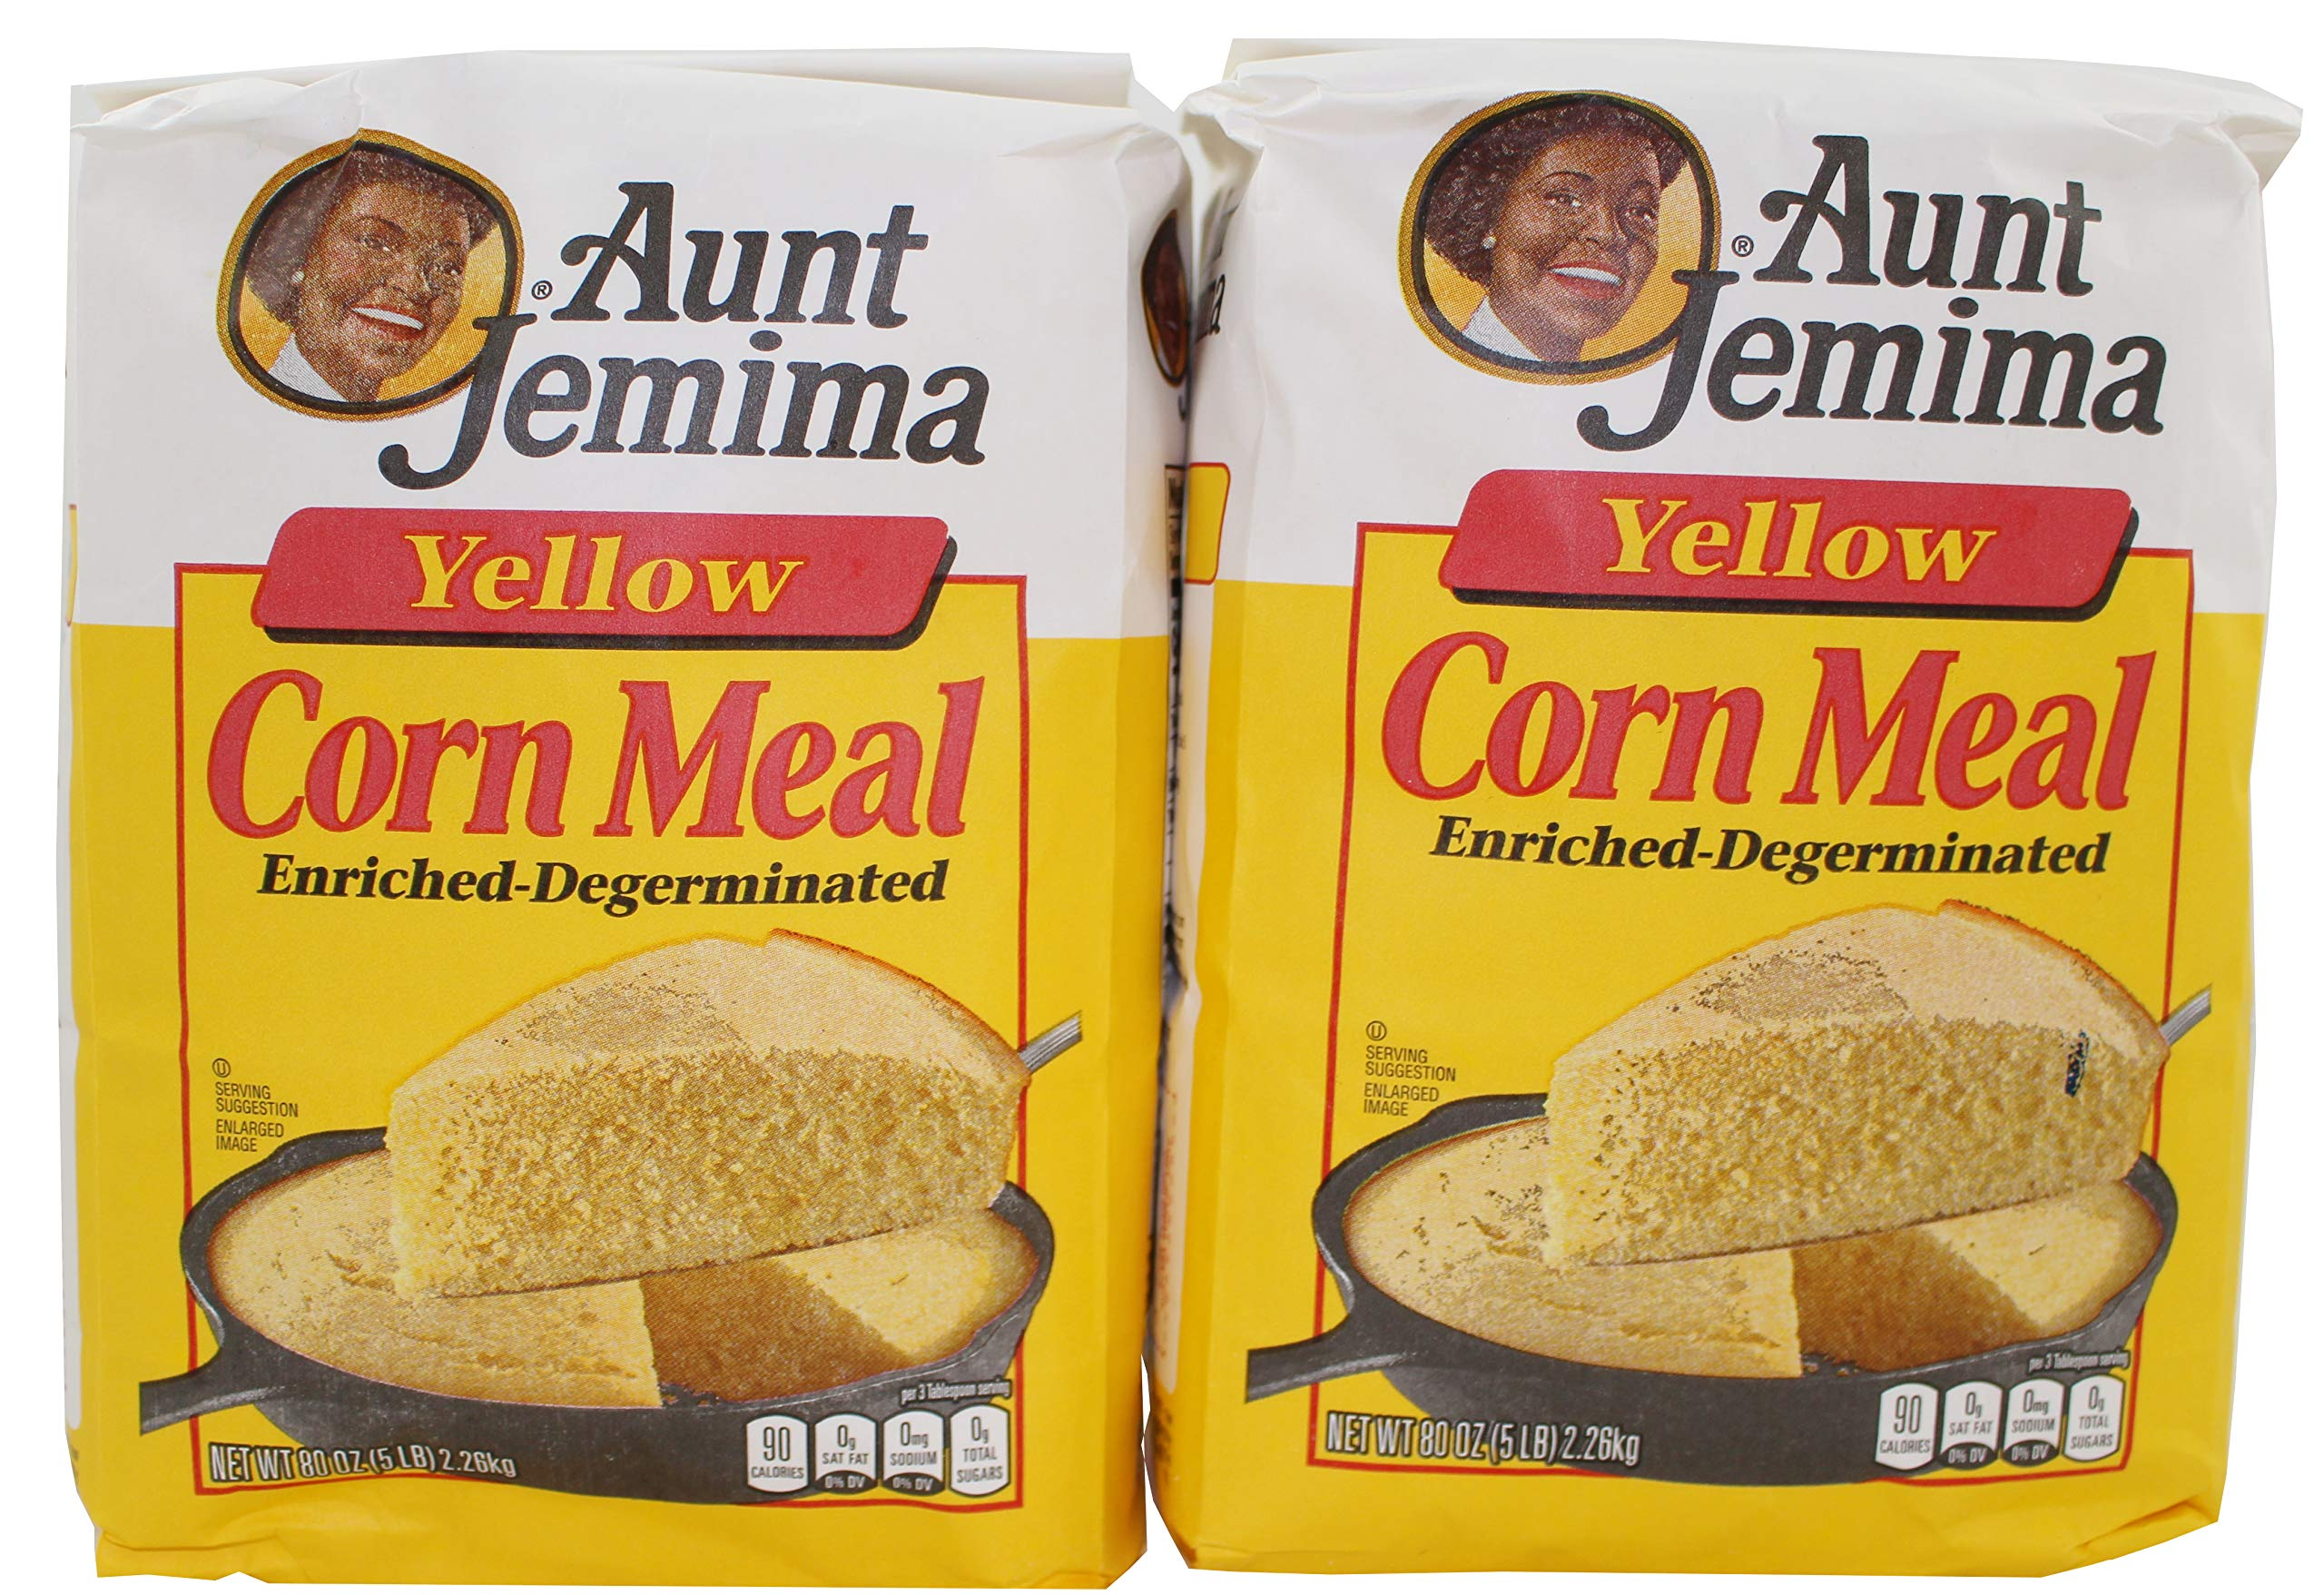 Aunt Jemima Yellow Corn Meal, 5 lb Each - 2 Pack